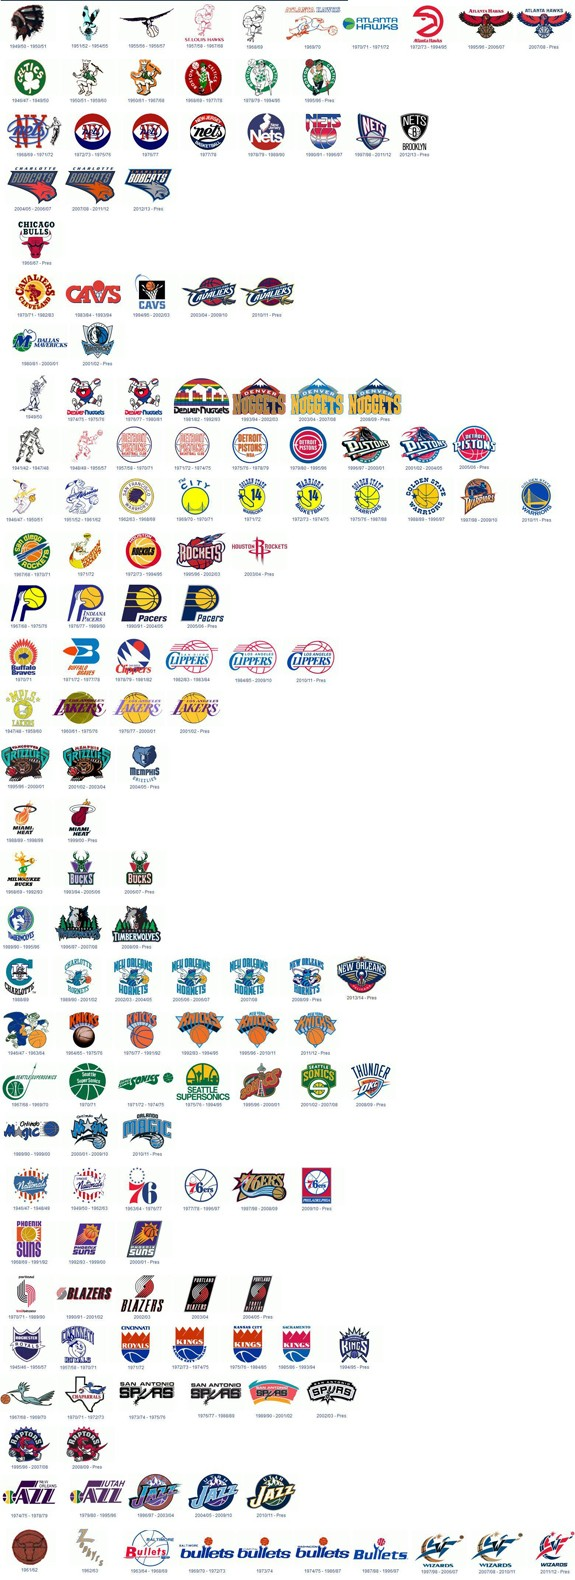 nba logos, chicago bulls, los angeles lakers, boston celtics